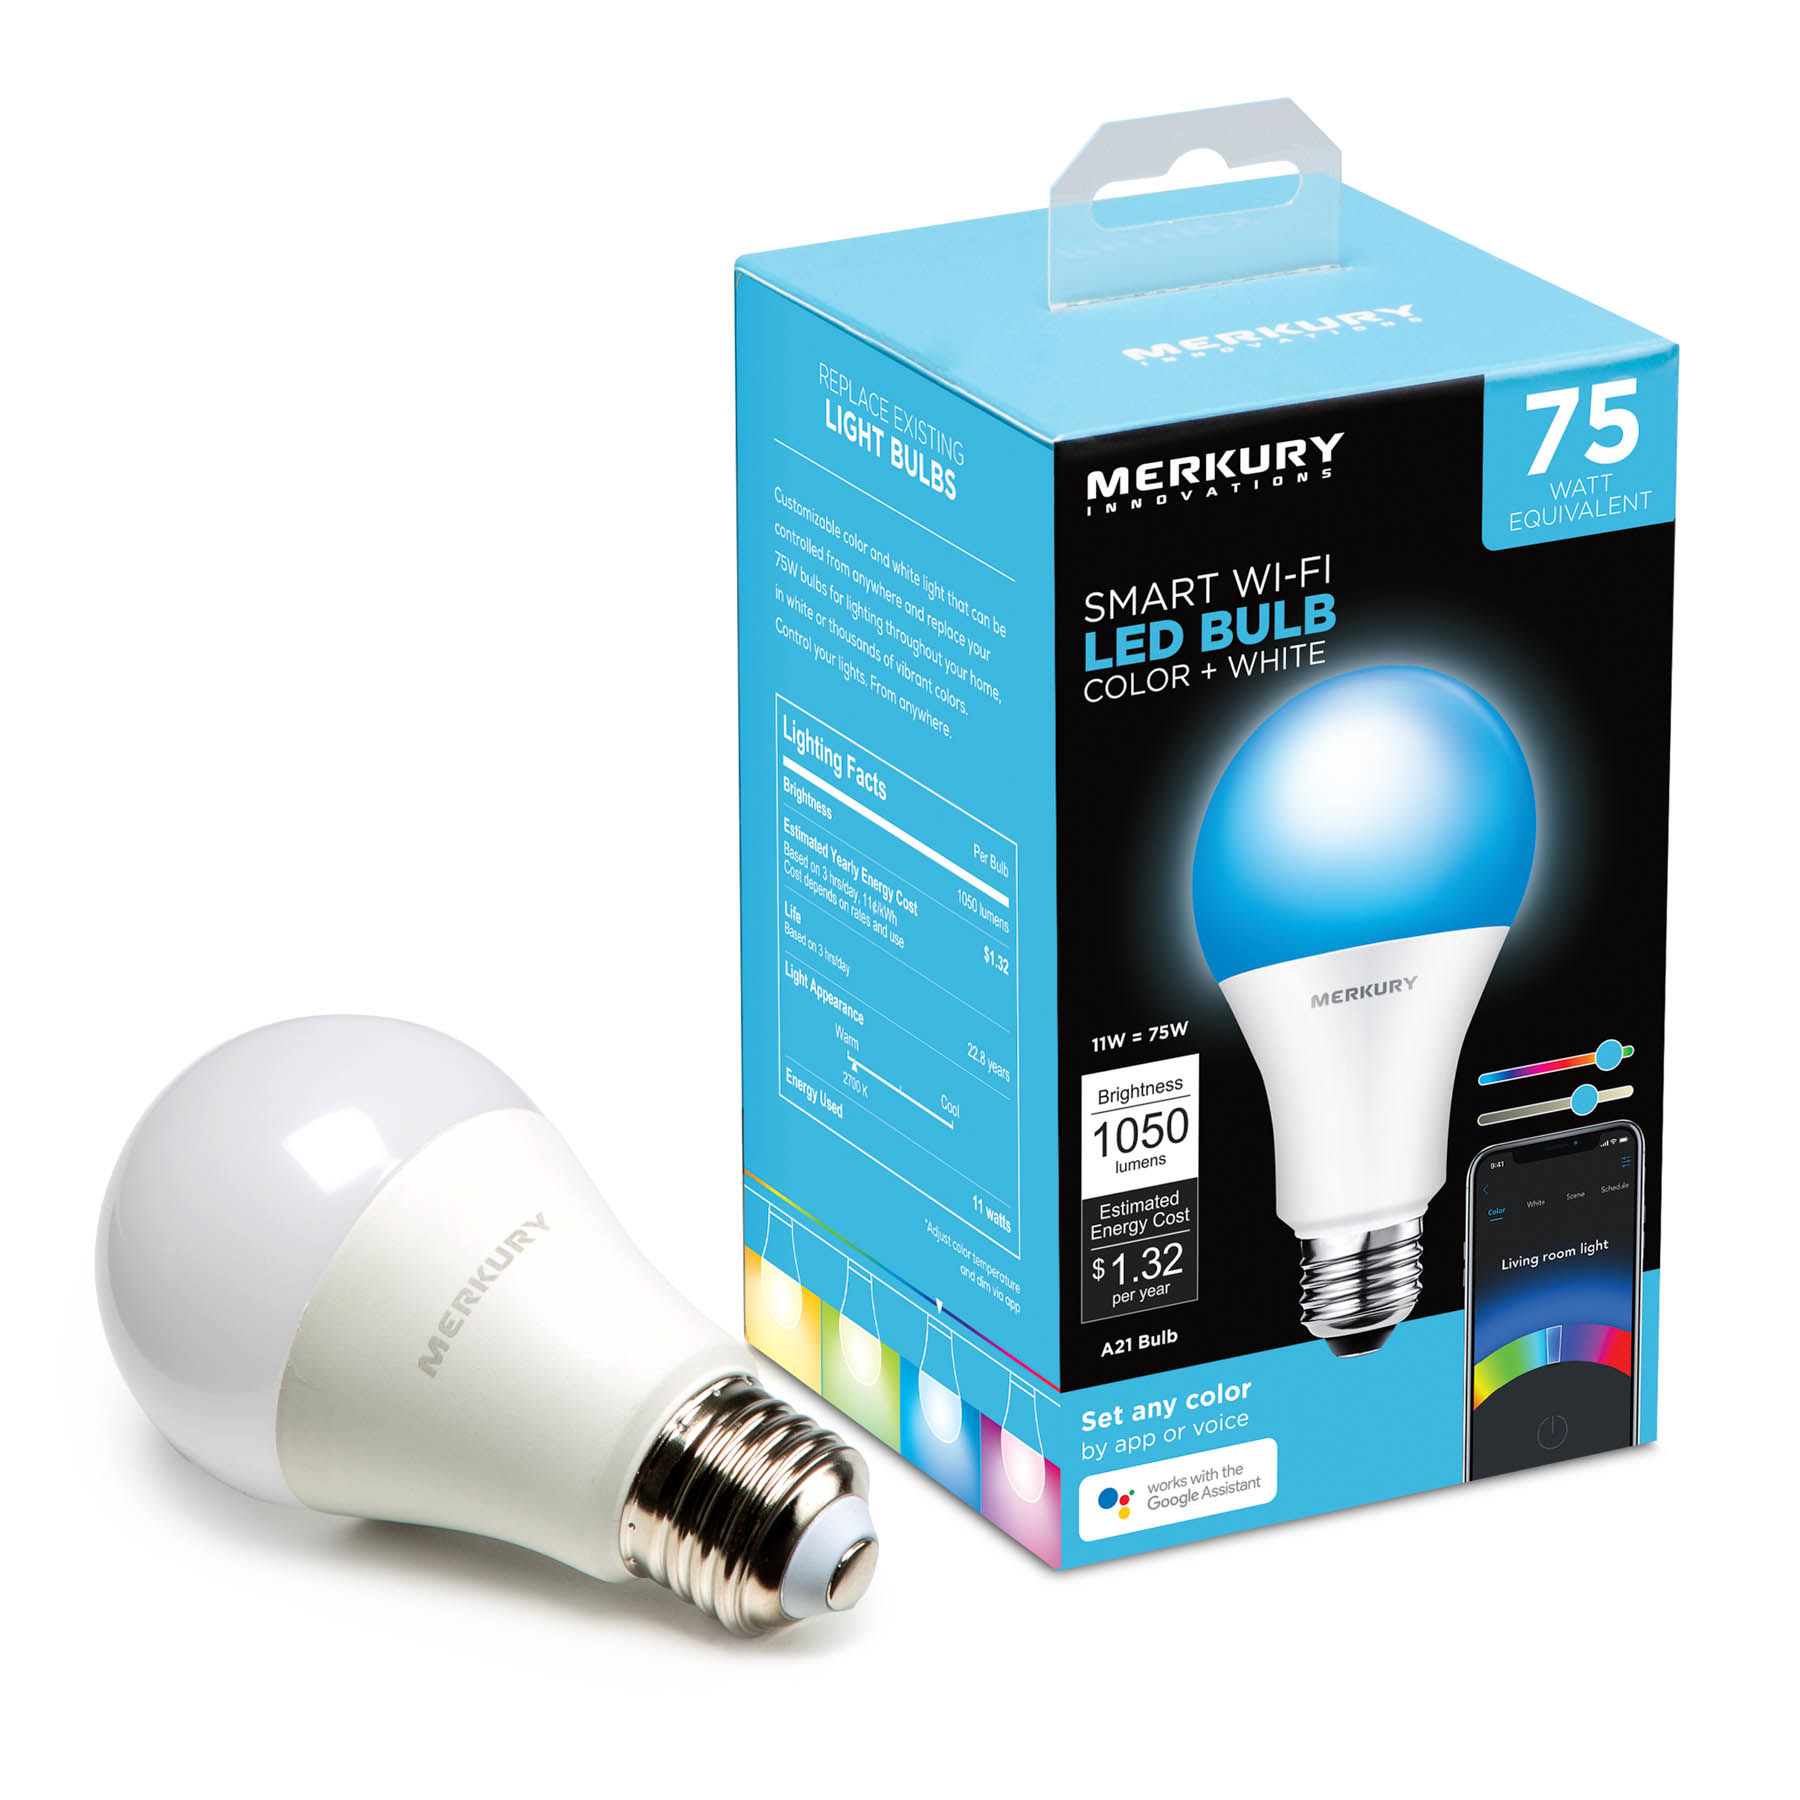 The lightbulb and packaging